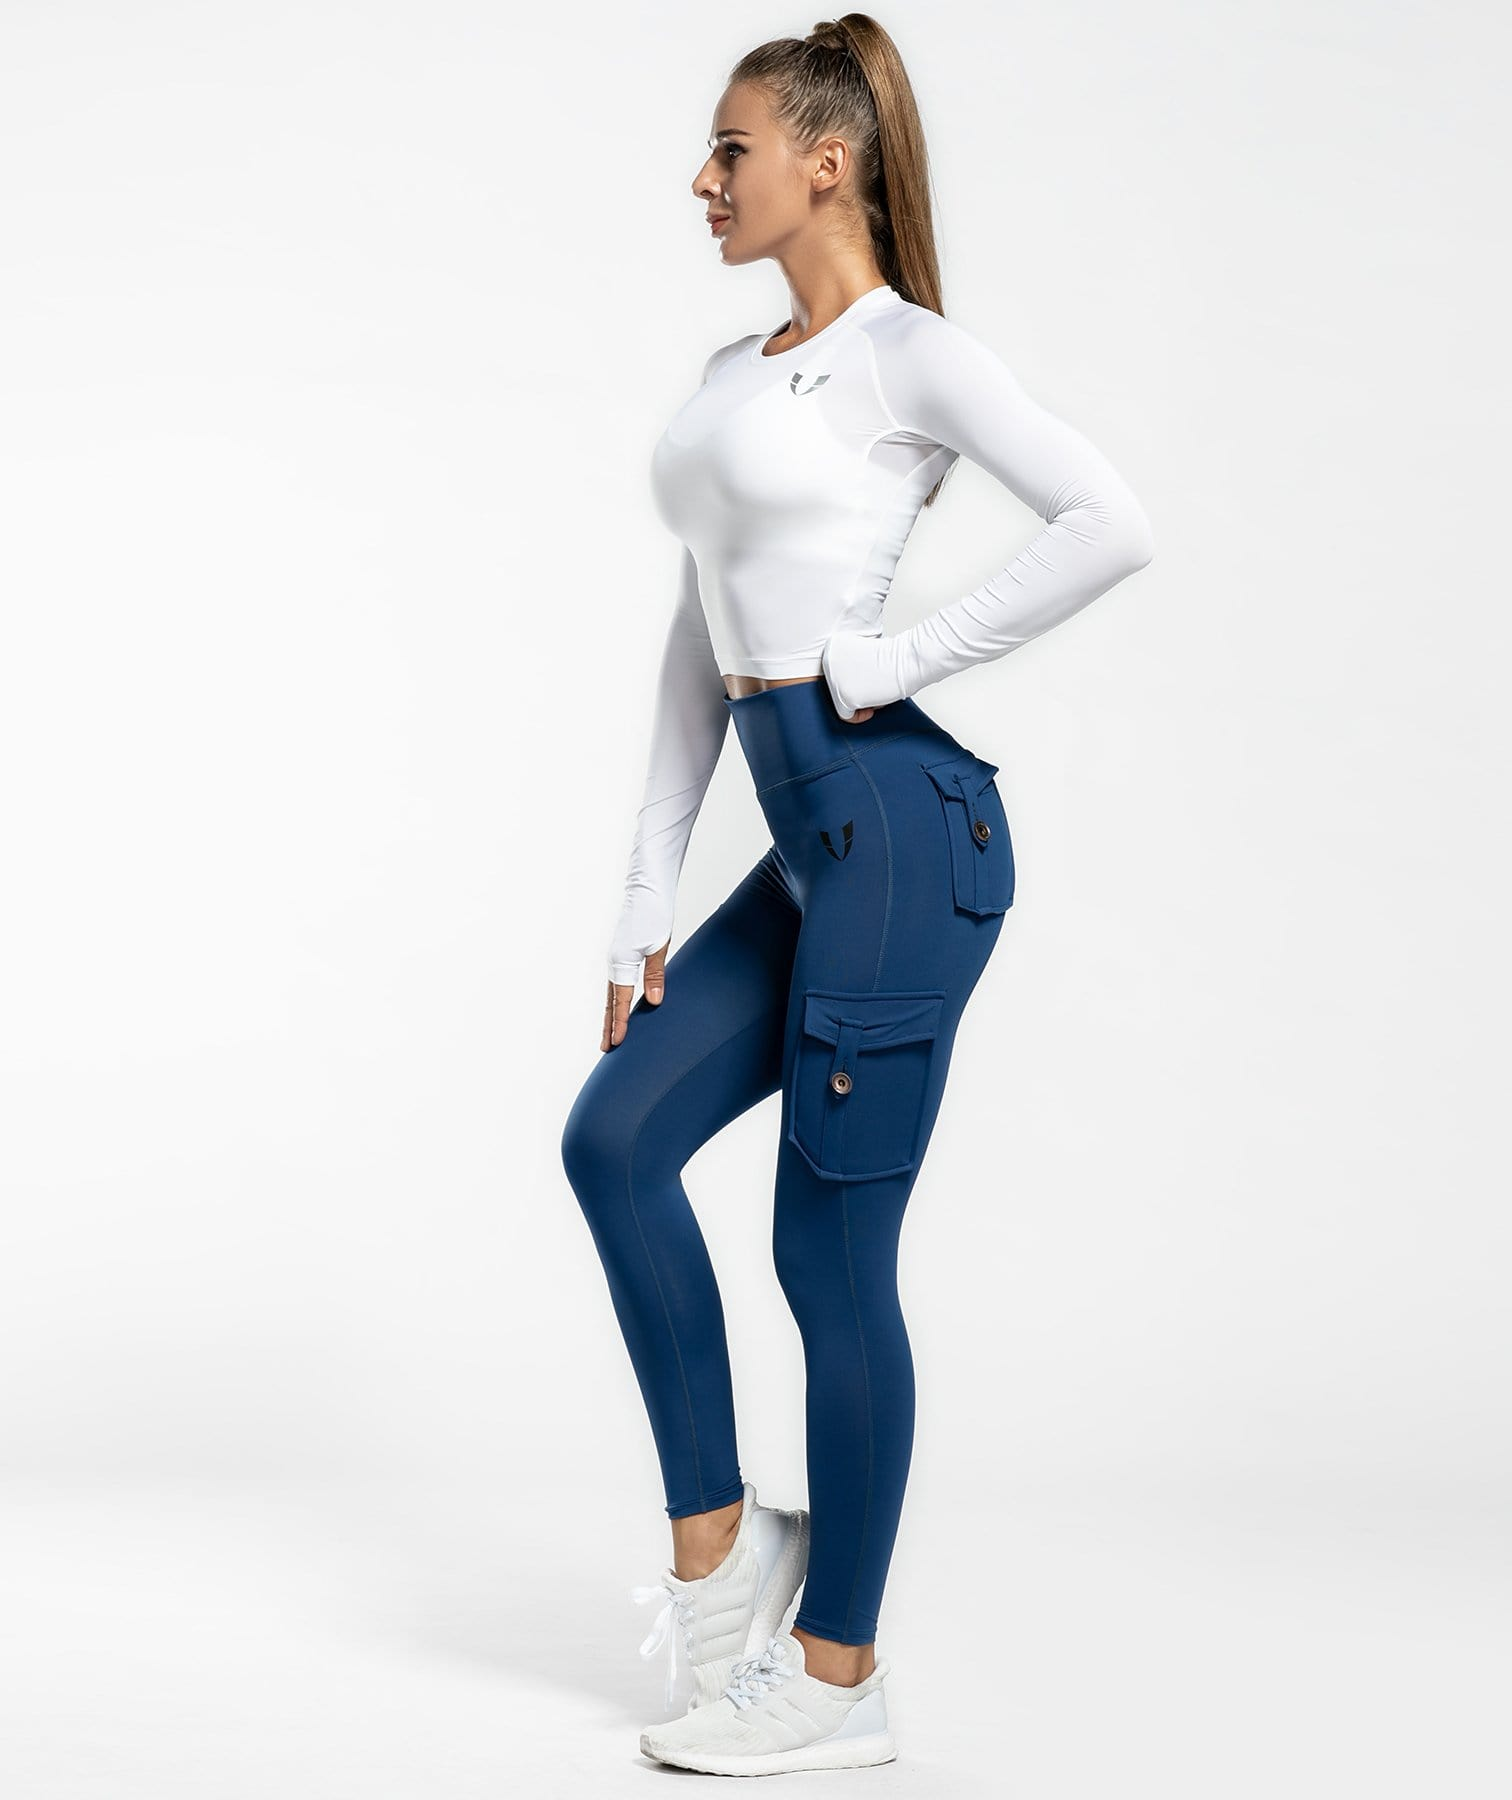 Cargo Ankle Length Leggings - Dark Blue - Firm Abs Fitness